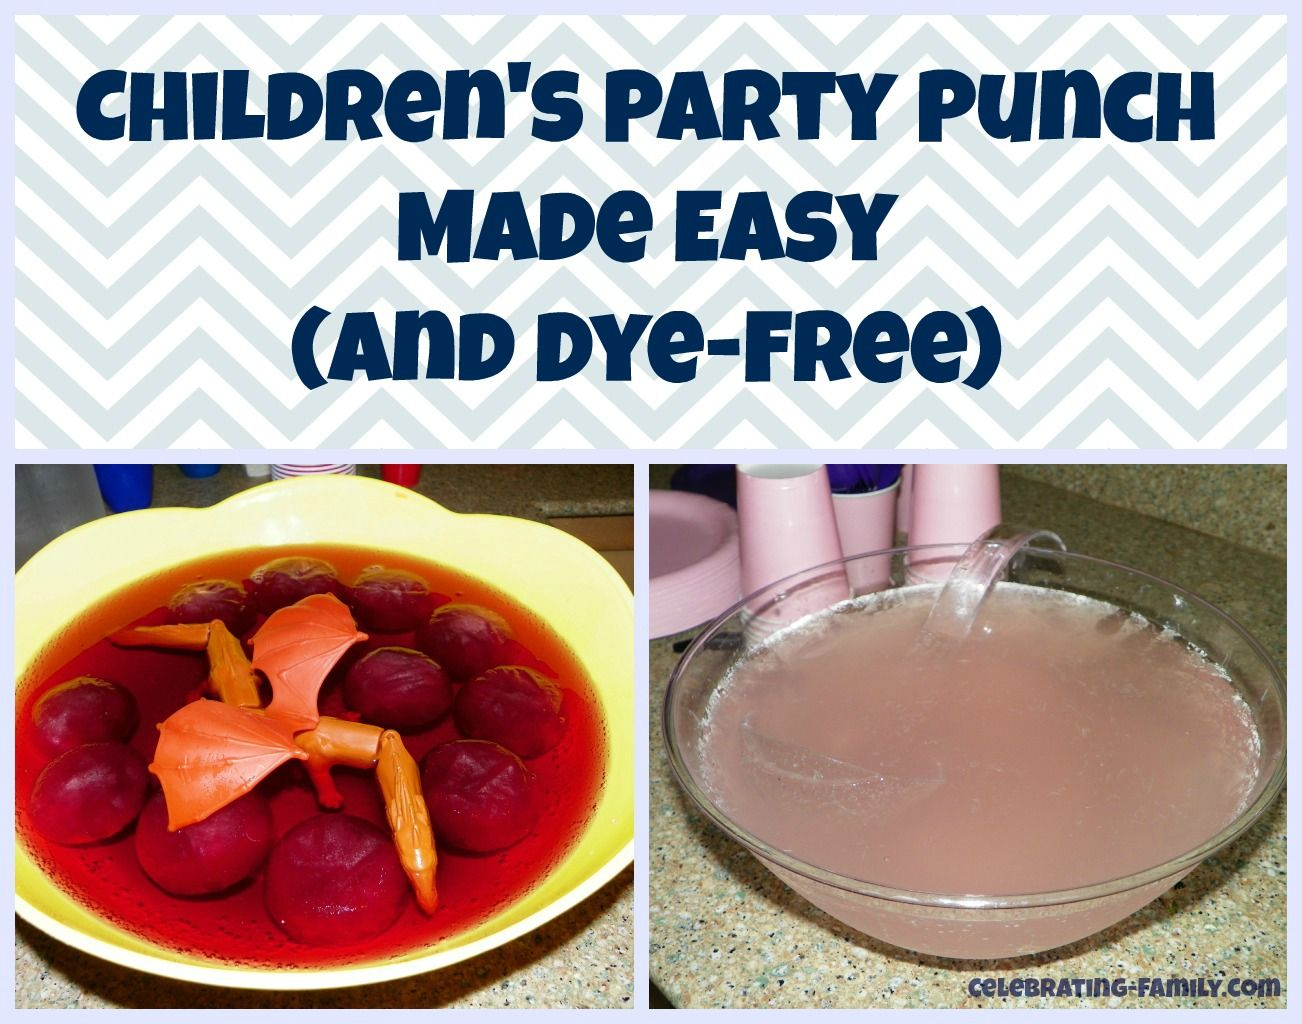 Dye free party punch recipes for kids (and grown-ups!)